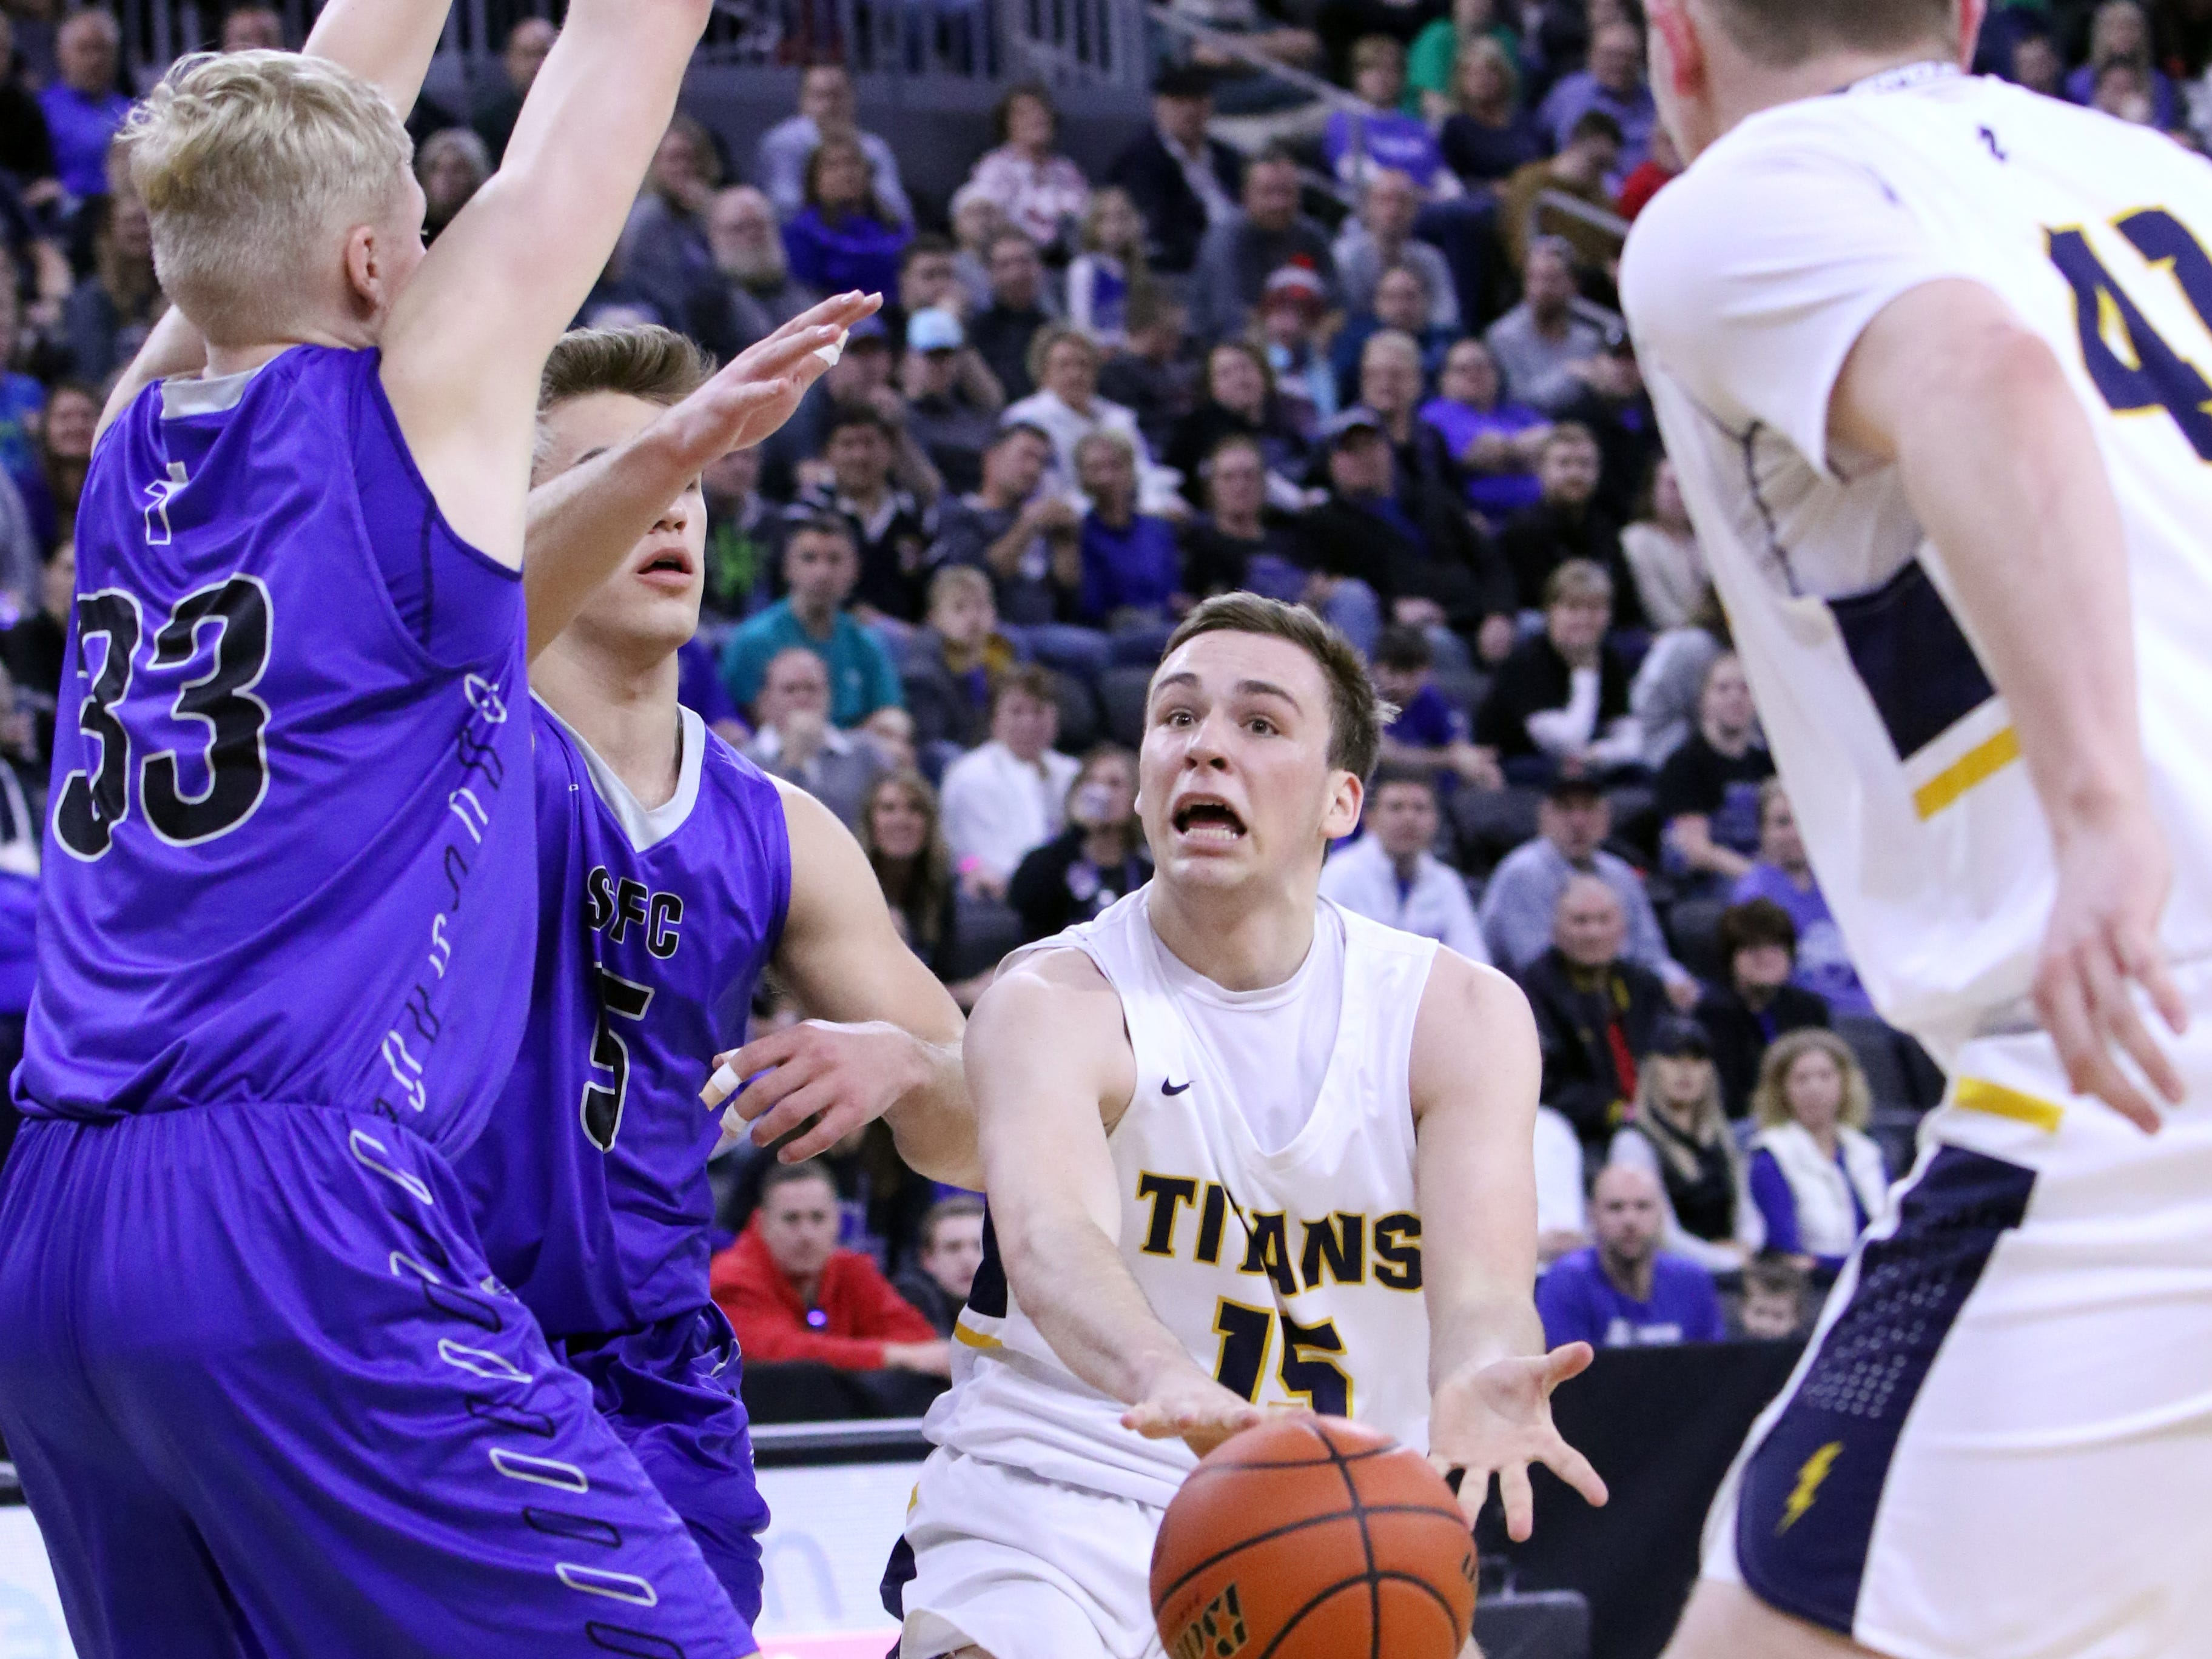 Noah Freidel of Tea Area dishes the ball past Zach Witte of Sioux Falls Christian during Saturday's Class A title game at the Premier Center.